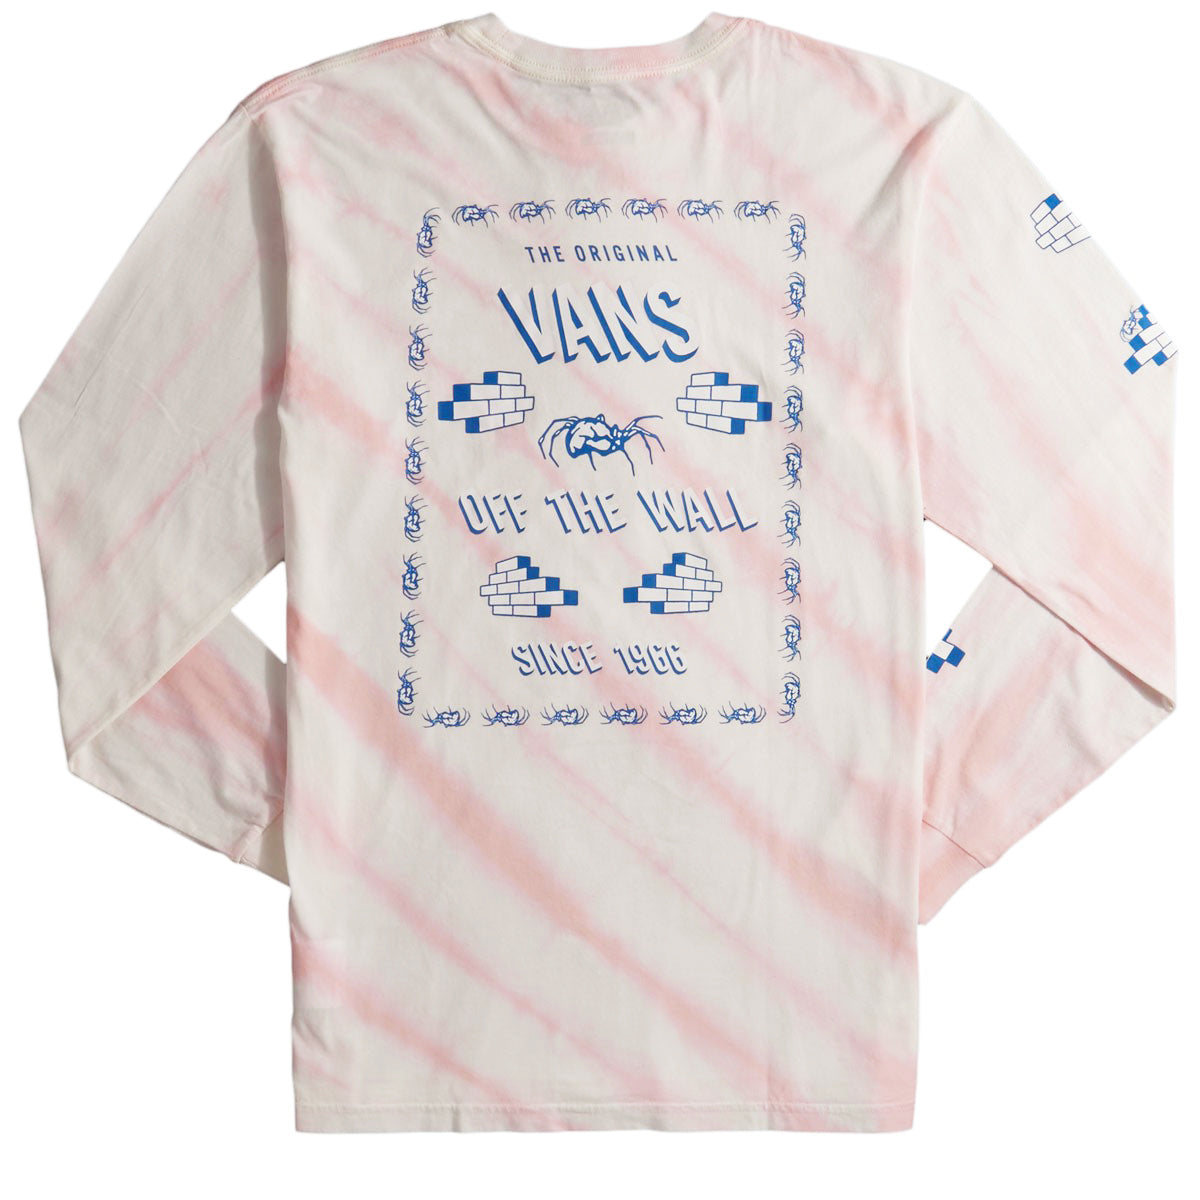 Vans Widow Maker Tie Dye Tee Cool Pink